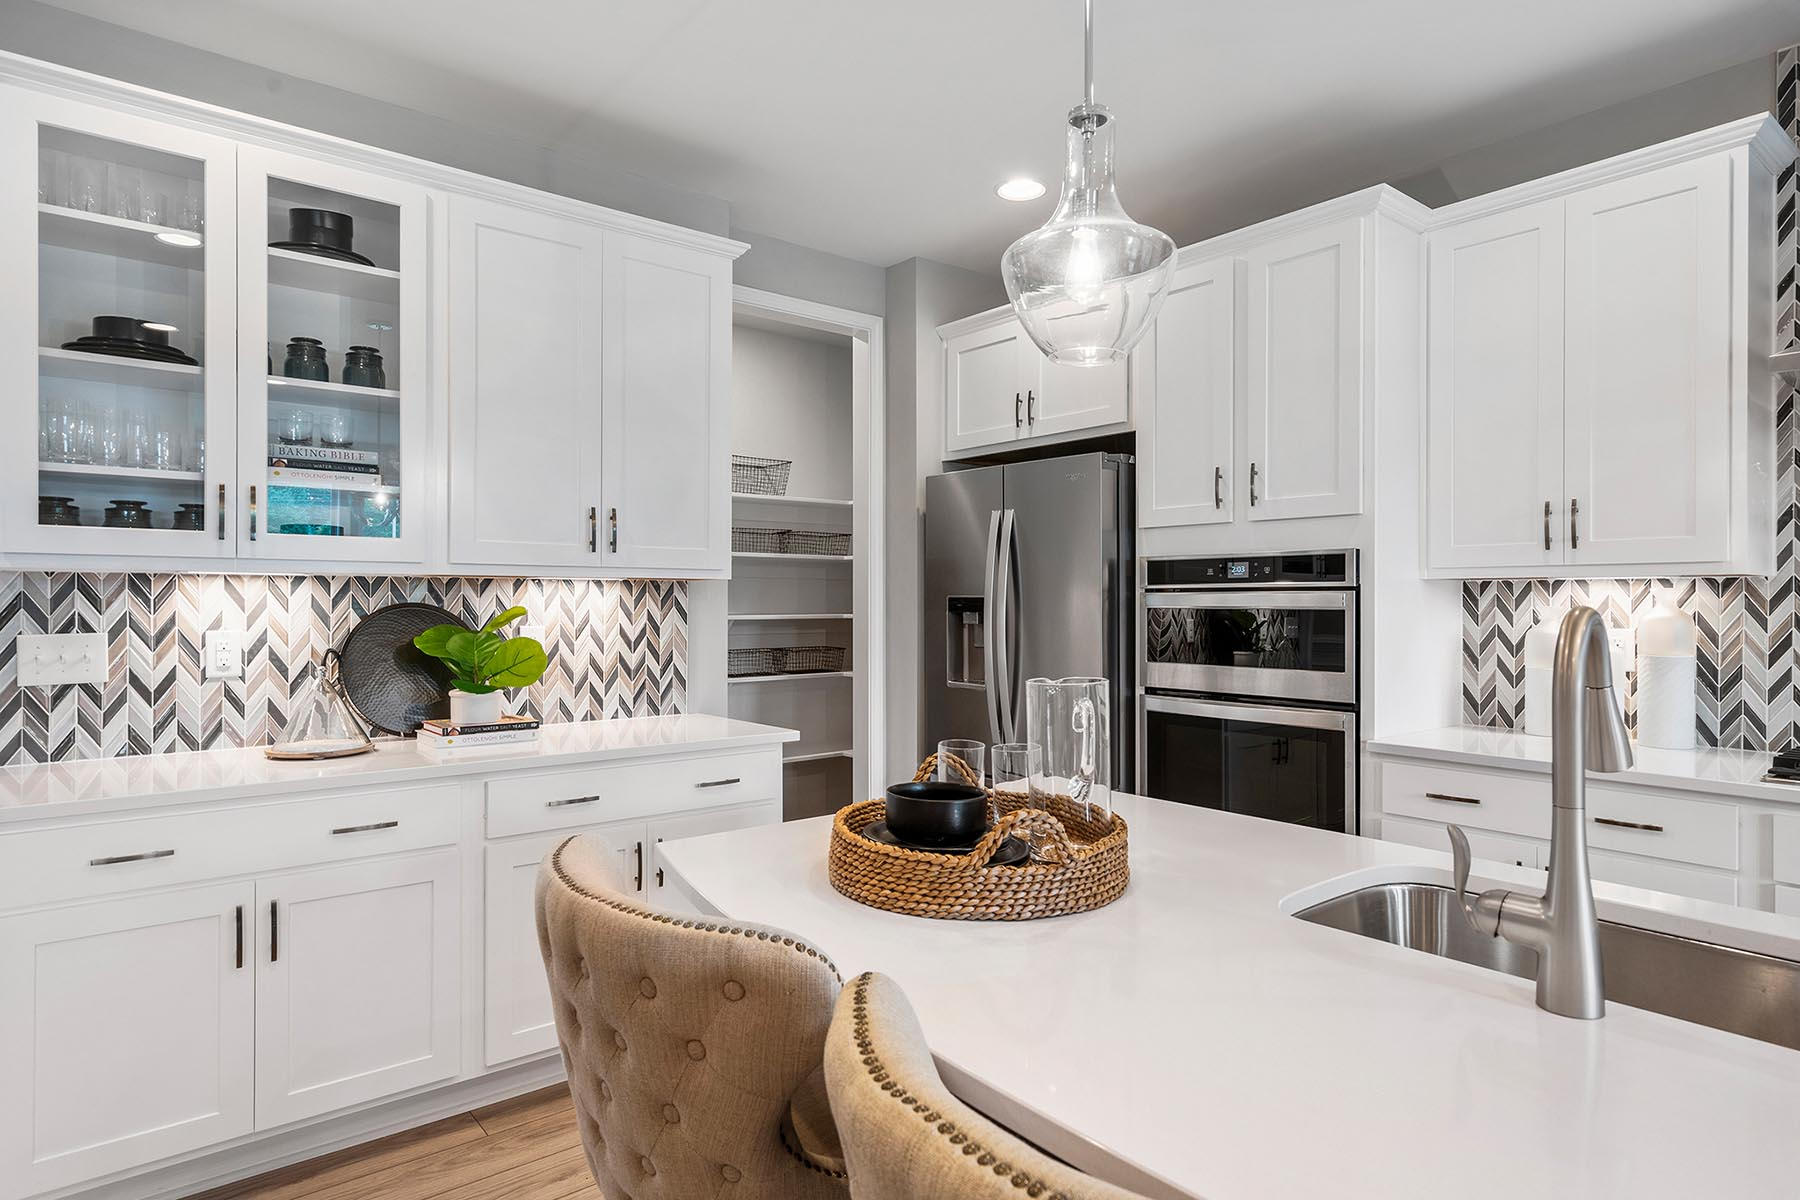 Larkin Plan Kitchen at Fairview Park in Cary North Carolina by Mattamy Homes